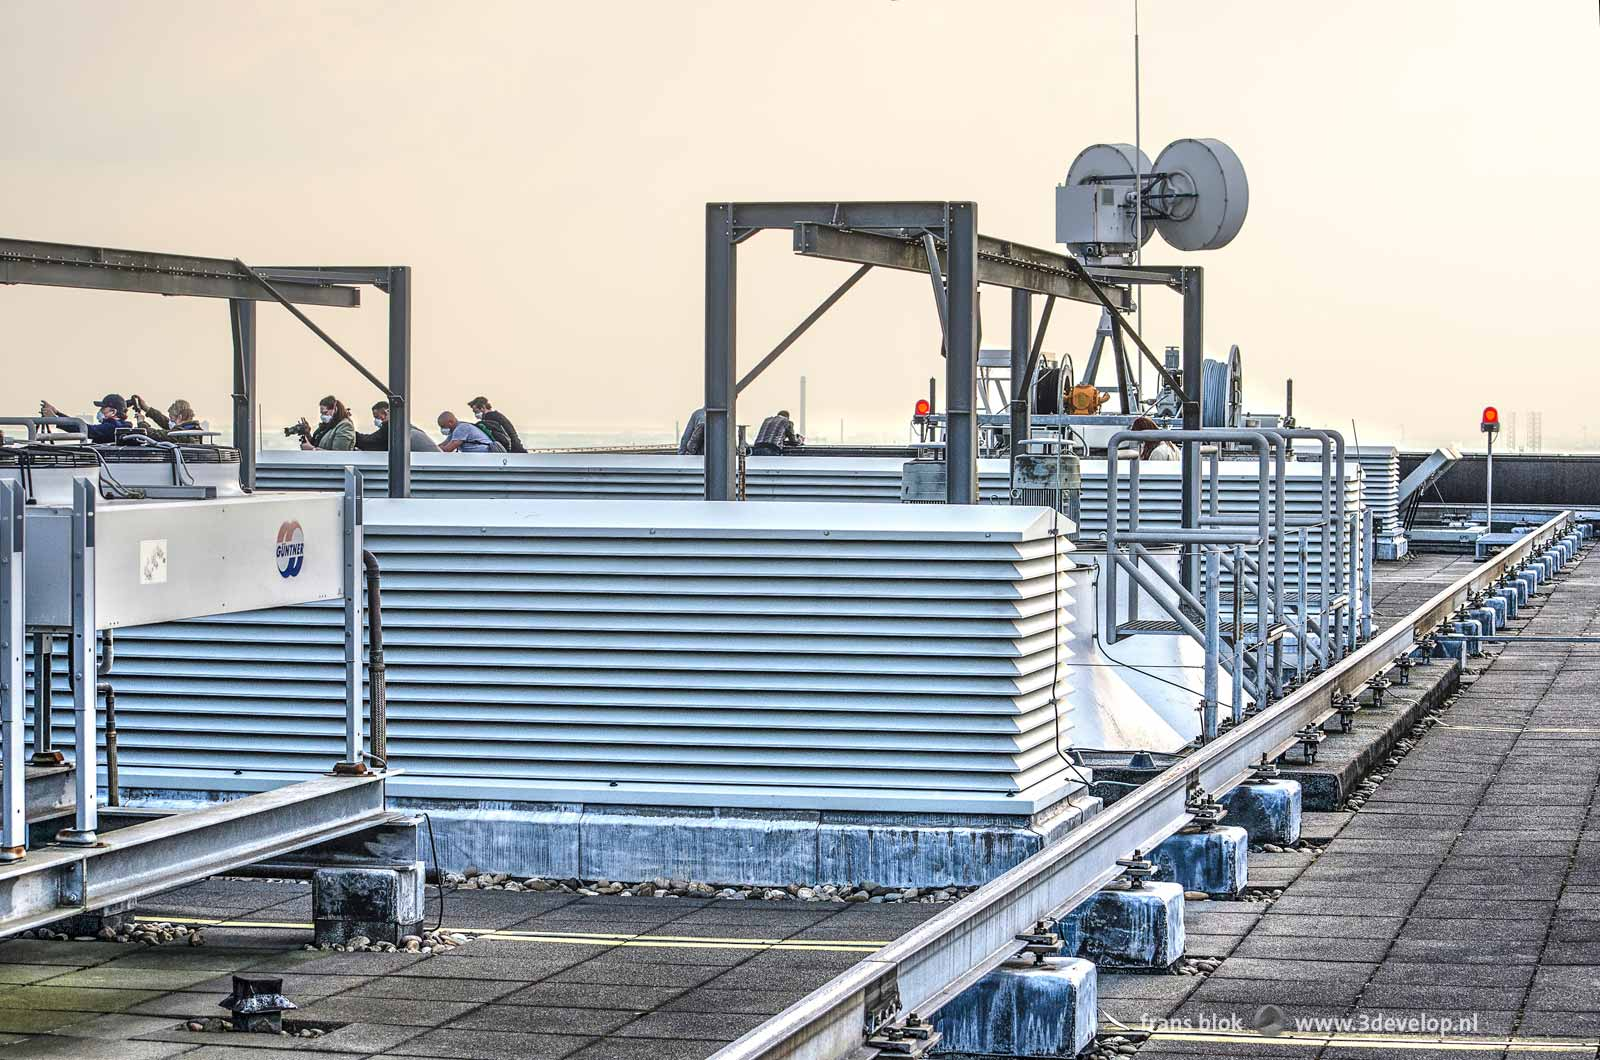 The machinery on the roof of the Delftse Poort building in Rotterdam where a group of photographers is taking pictures